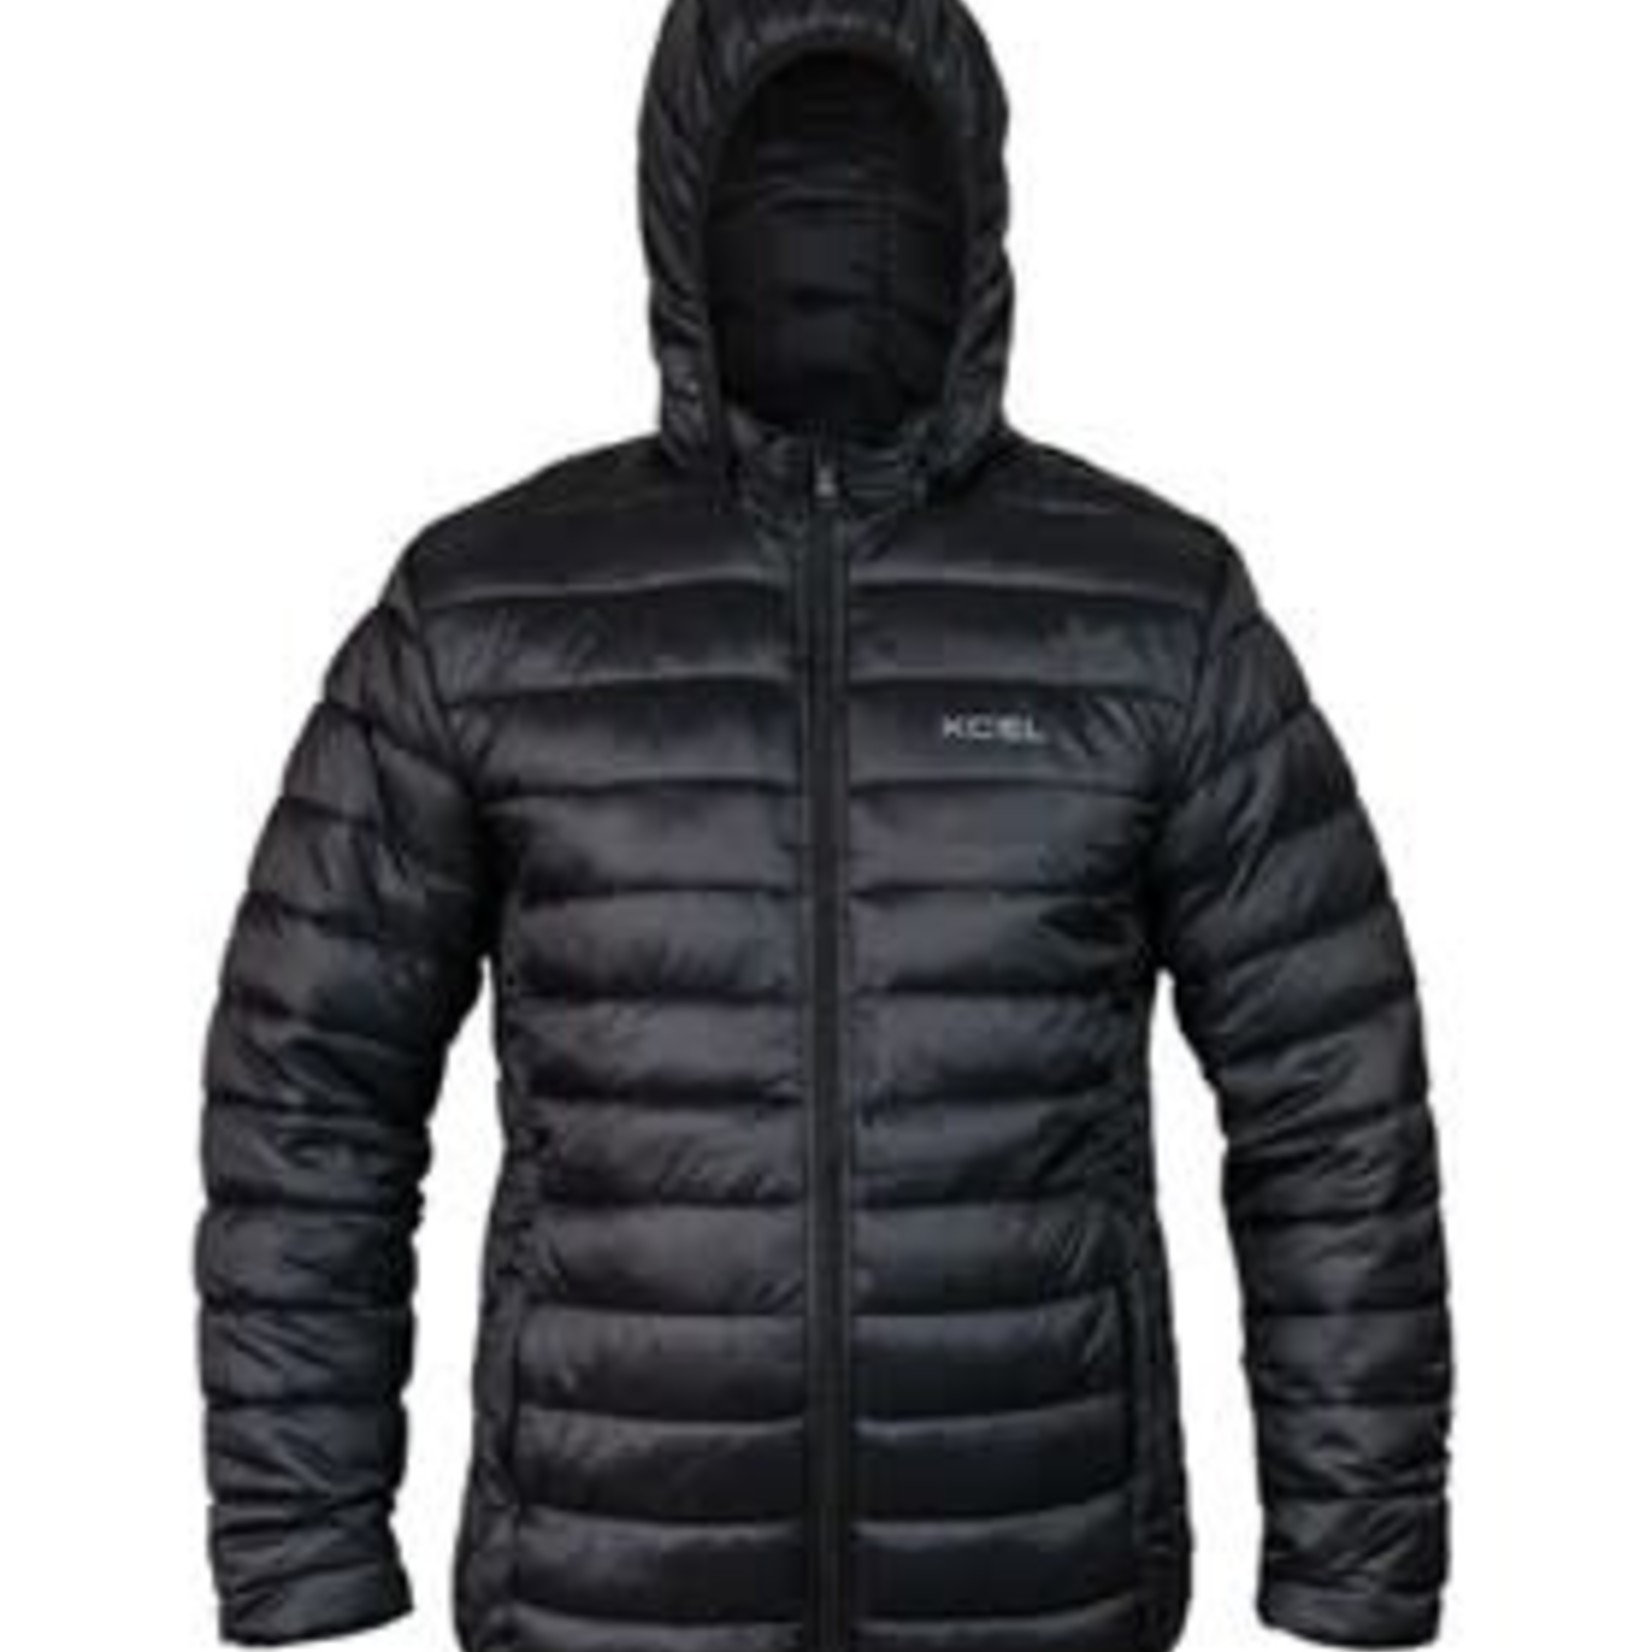 XCEL XCEL Hooded Puffy Jacket.